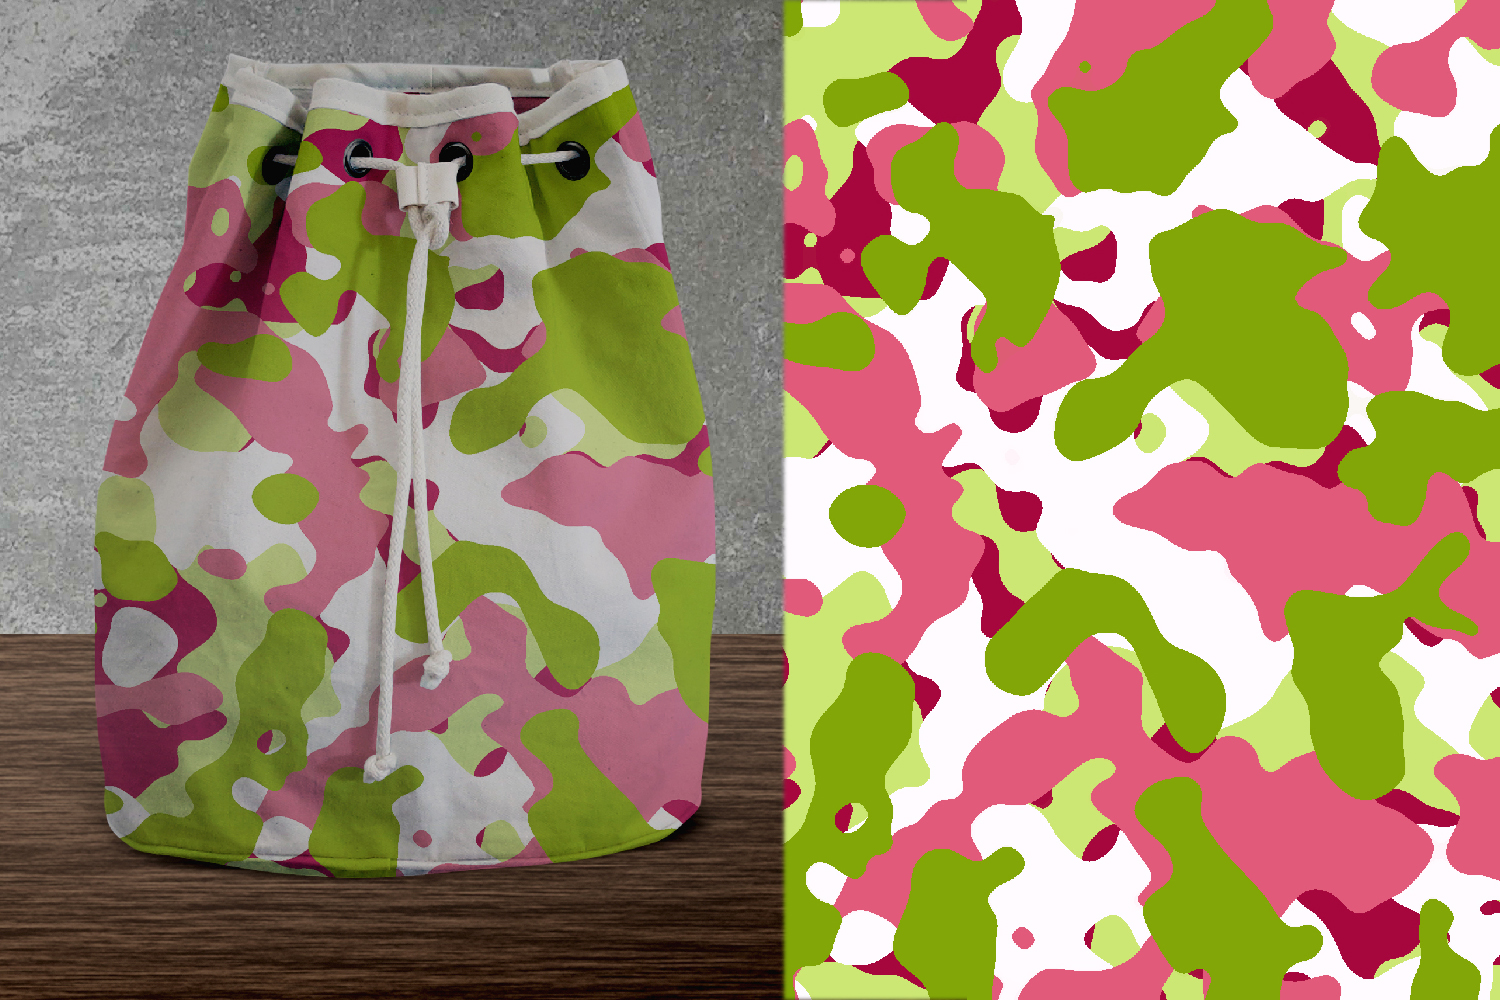 40 Alternative Camouflage Paper Designs example image 10